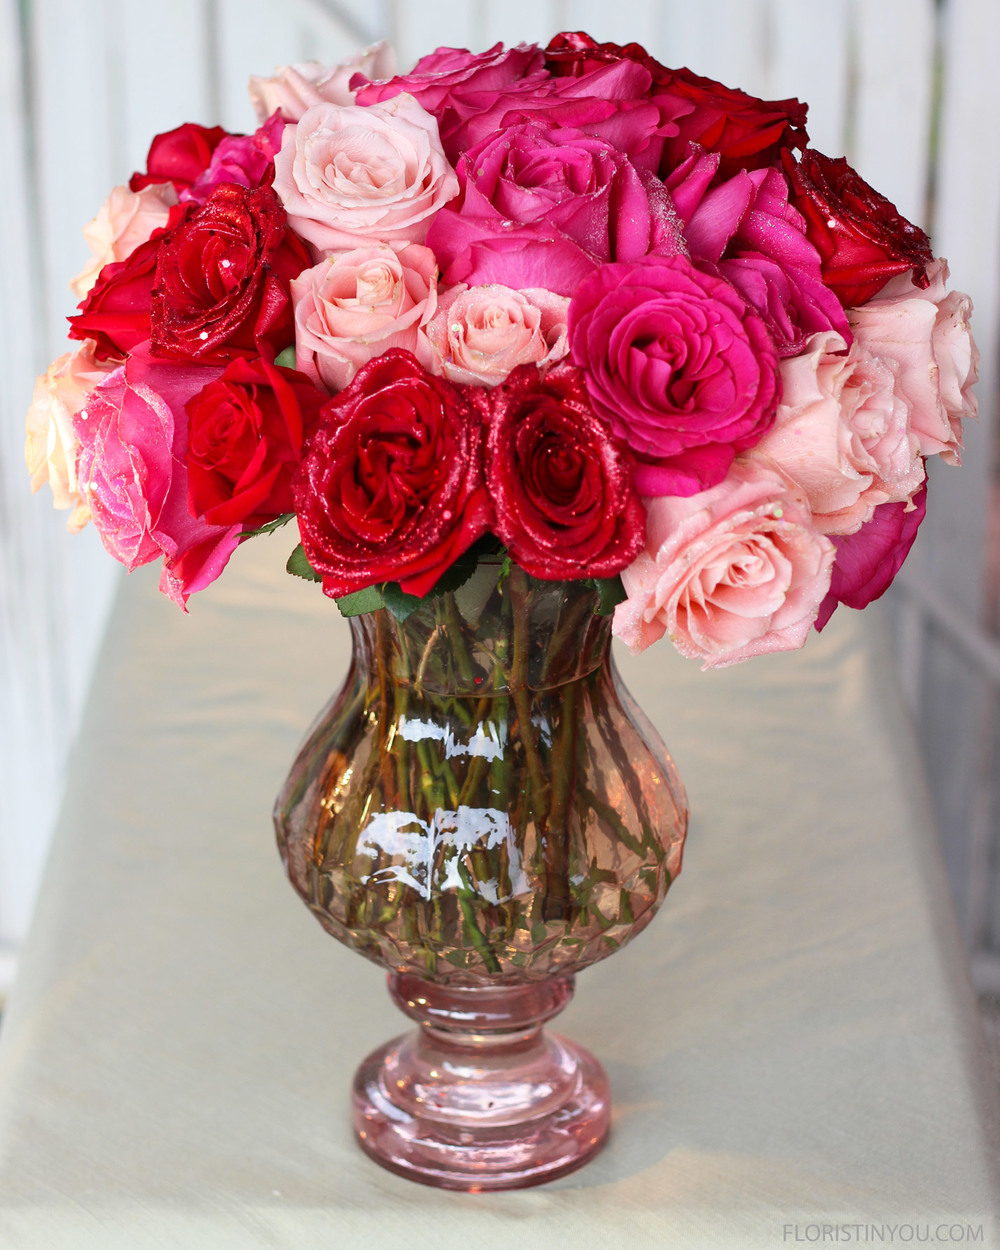 "Valentine's Day Glitter Roses                     Normal   0           false   false   false     EN-US   JA   X-NONE                                                                                                                                                                                                                                                                                                                                                                              /* Style Definitions */ table.MsoNormalTable 	{mso-style-name:""Table Normal""; 	mso-tstyle-rowband-size:0; 	mso-tstyle-colband-size:0; 	mso-style-noshow:yes; 	mso-style-priority:99; 	mso-style-parent:""""; 	mso-padding-alt:0in 5.4pt 0in 5.4pt; 	mso-para-margin:0in; 	mso-para-margin-bottom:.0001pt; 	mso-pagination:widow-orphan; 	font-size:12.0pt; 	font-family:Cambria; 	mso-ascii-font-family:Cambria; 	mso-ascii-theme-font:minor-latin; 	mso-hansi-font-family:Cambria; 	mso-hansi-theme-font:minor-latin;}"